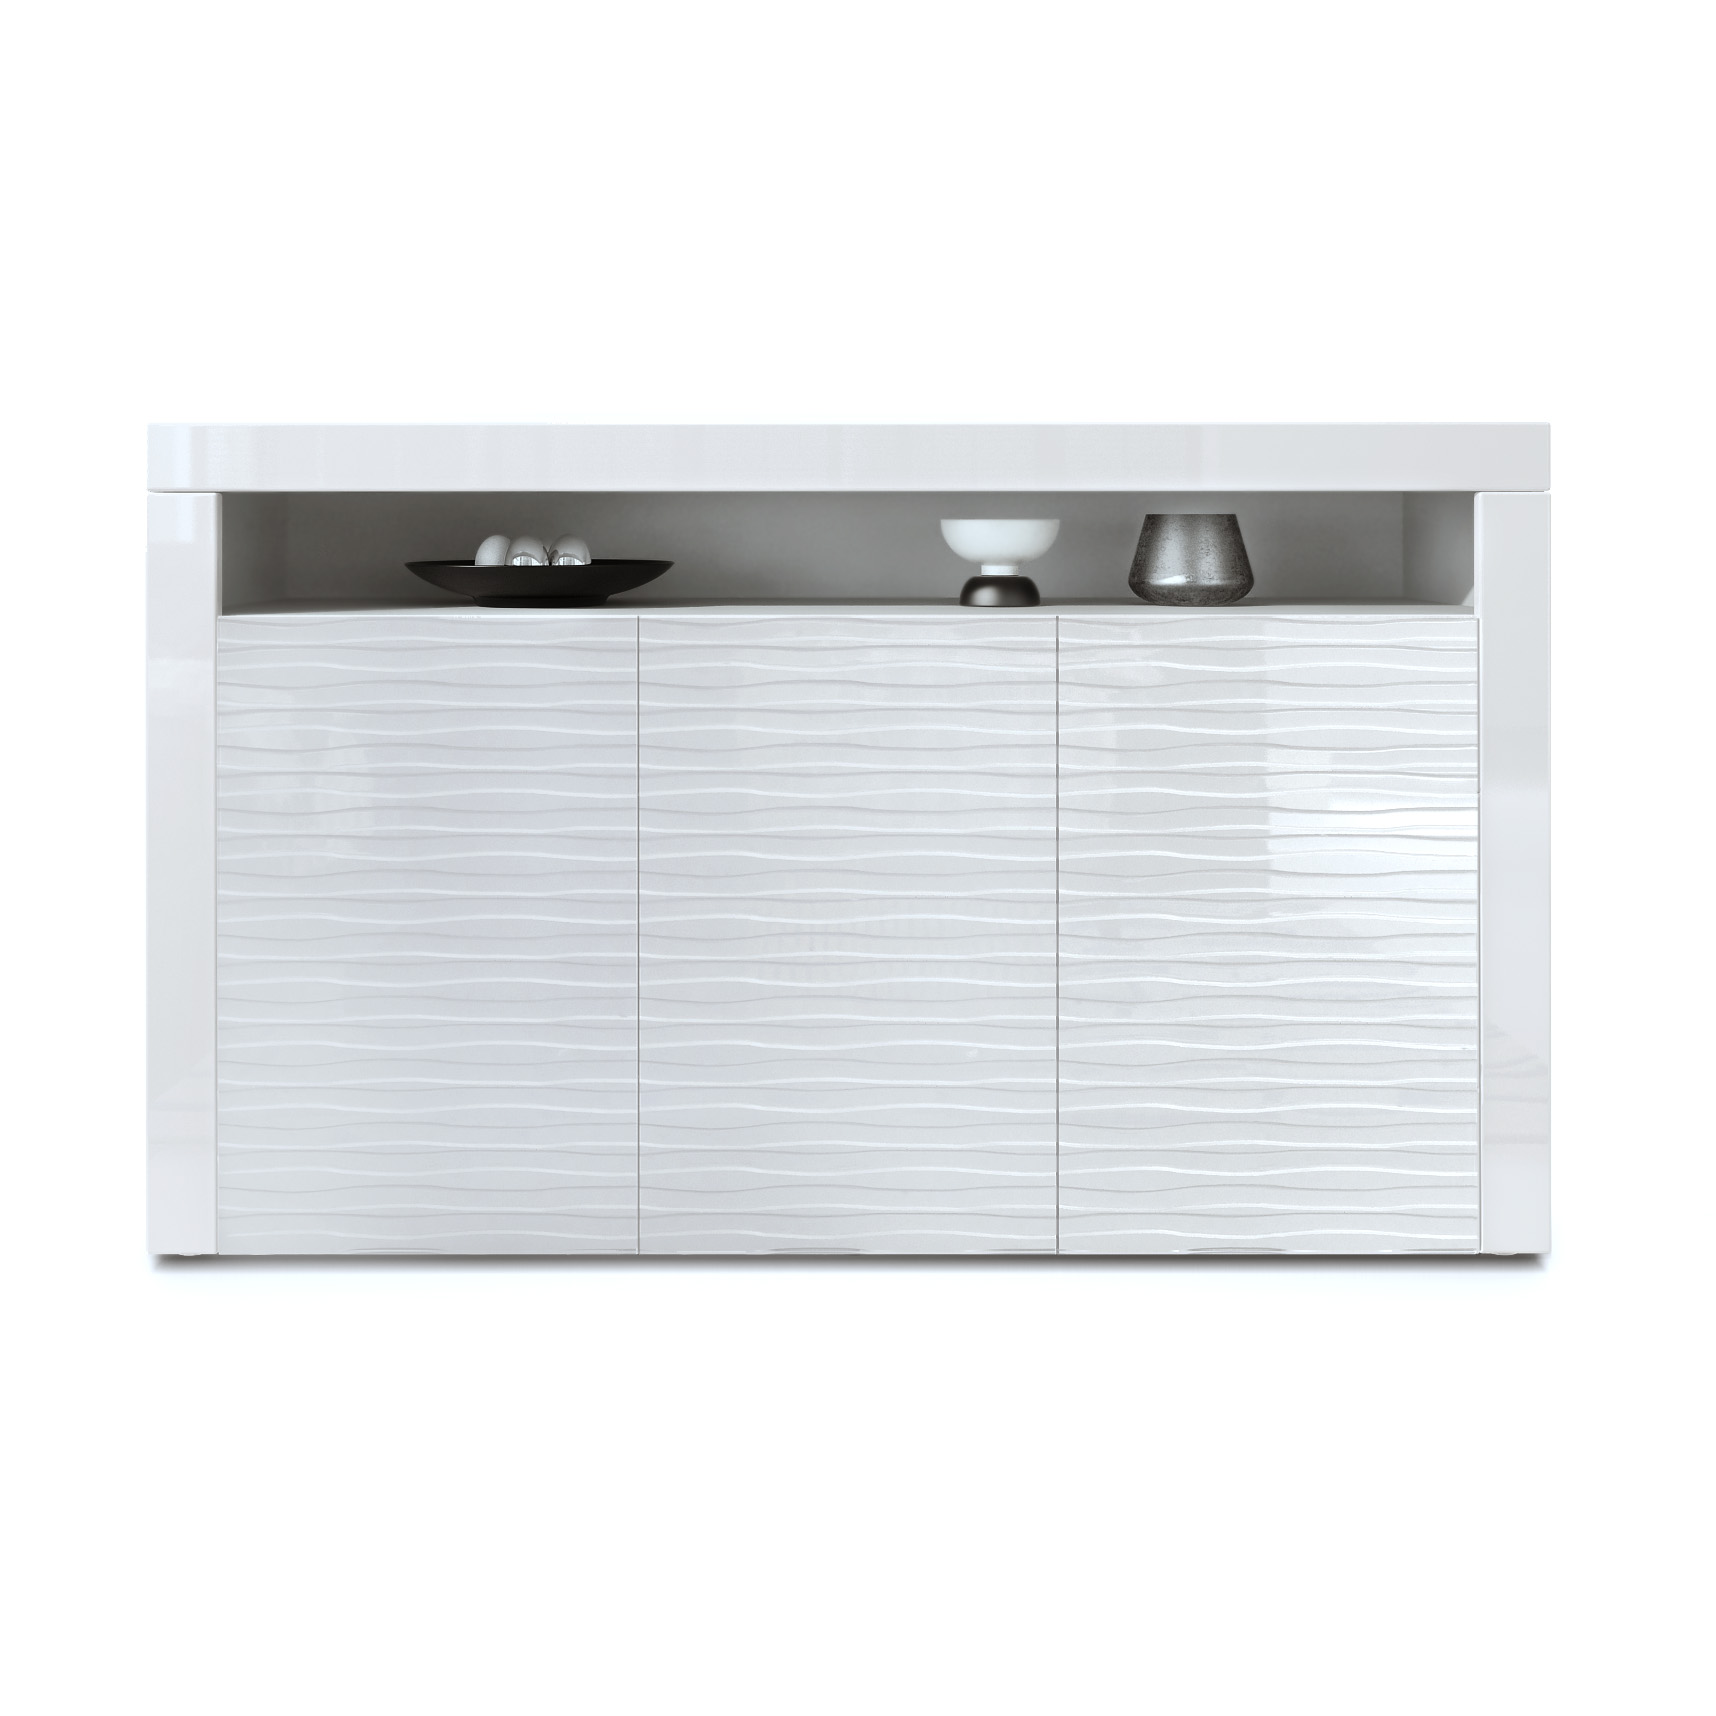 sideboard tv unit stand cabinet chest valencia in white with glossy 3d fronts ebay. Black Bedroom Furniture Sets. Home Design Ideas